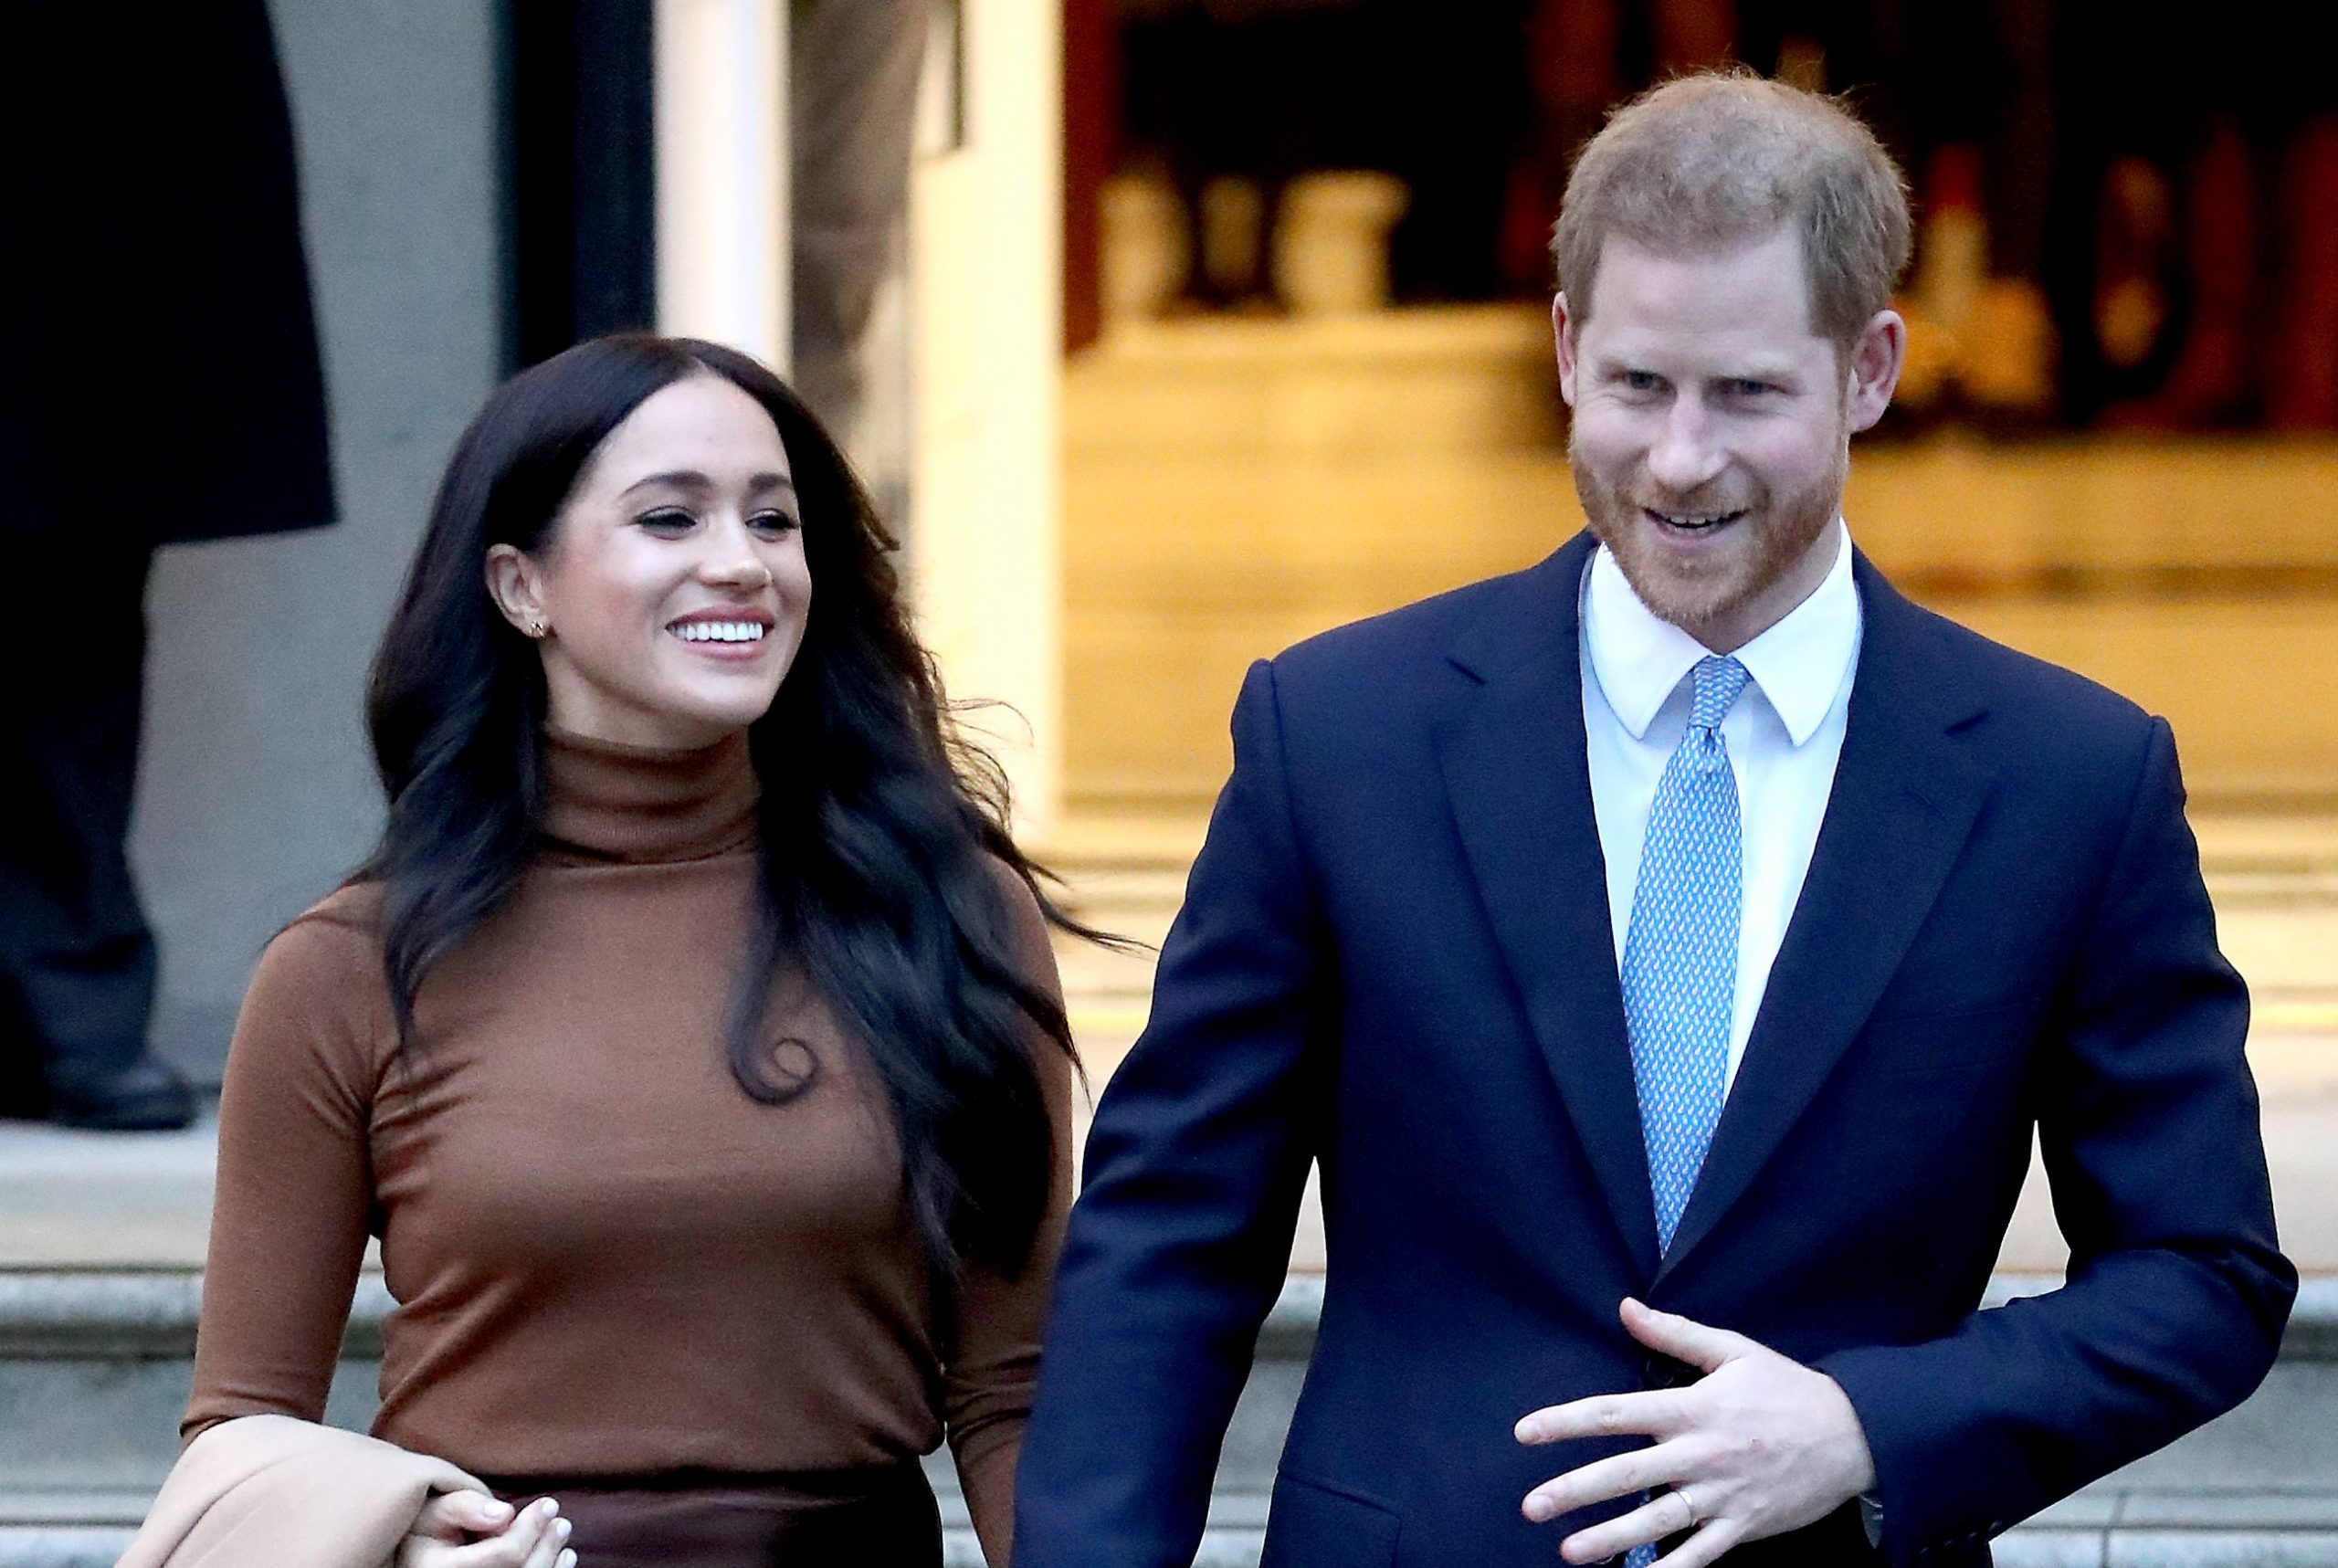 Meghan and Harry to step down from royal duties